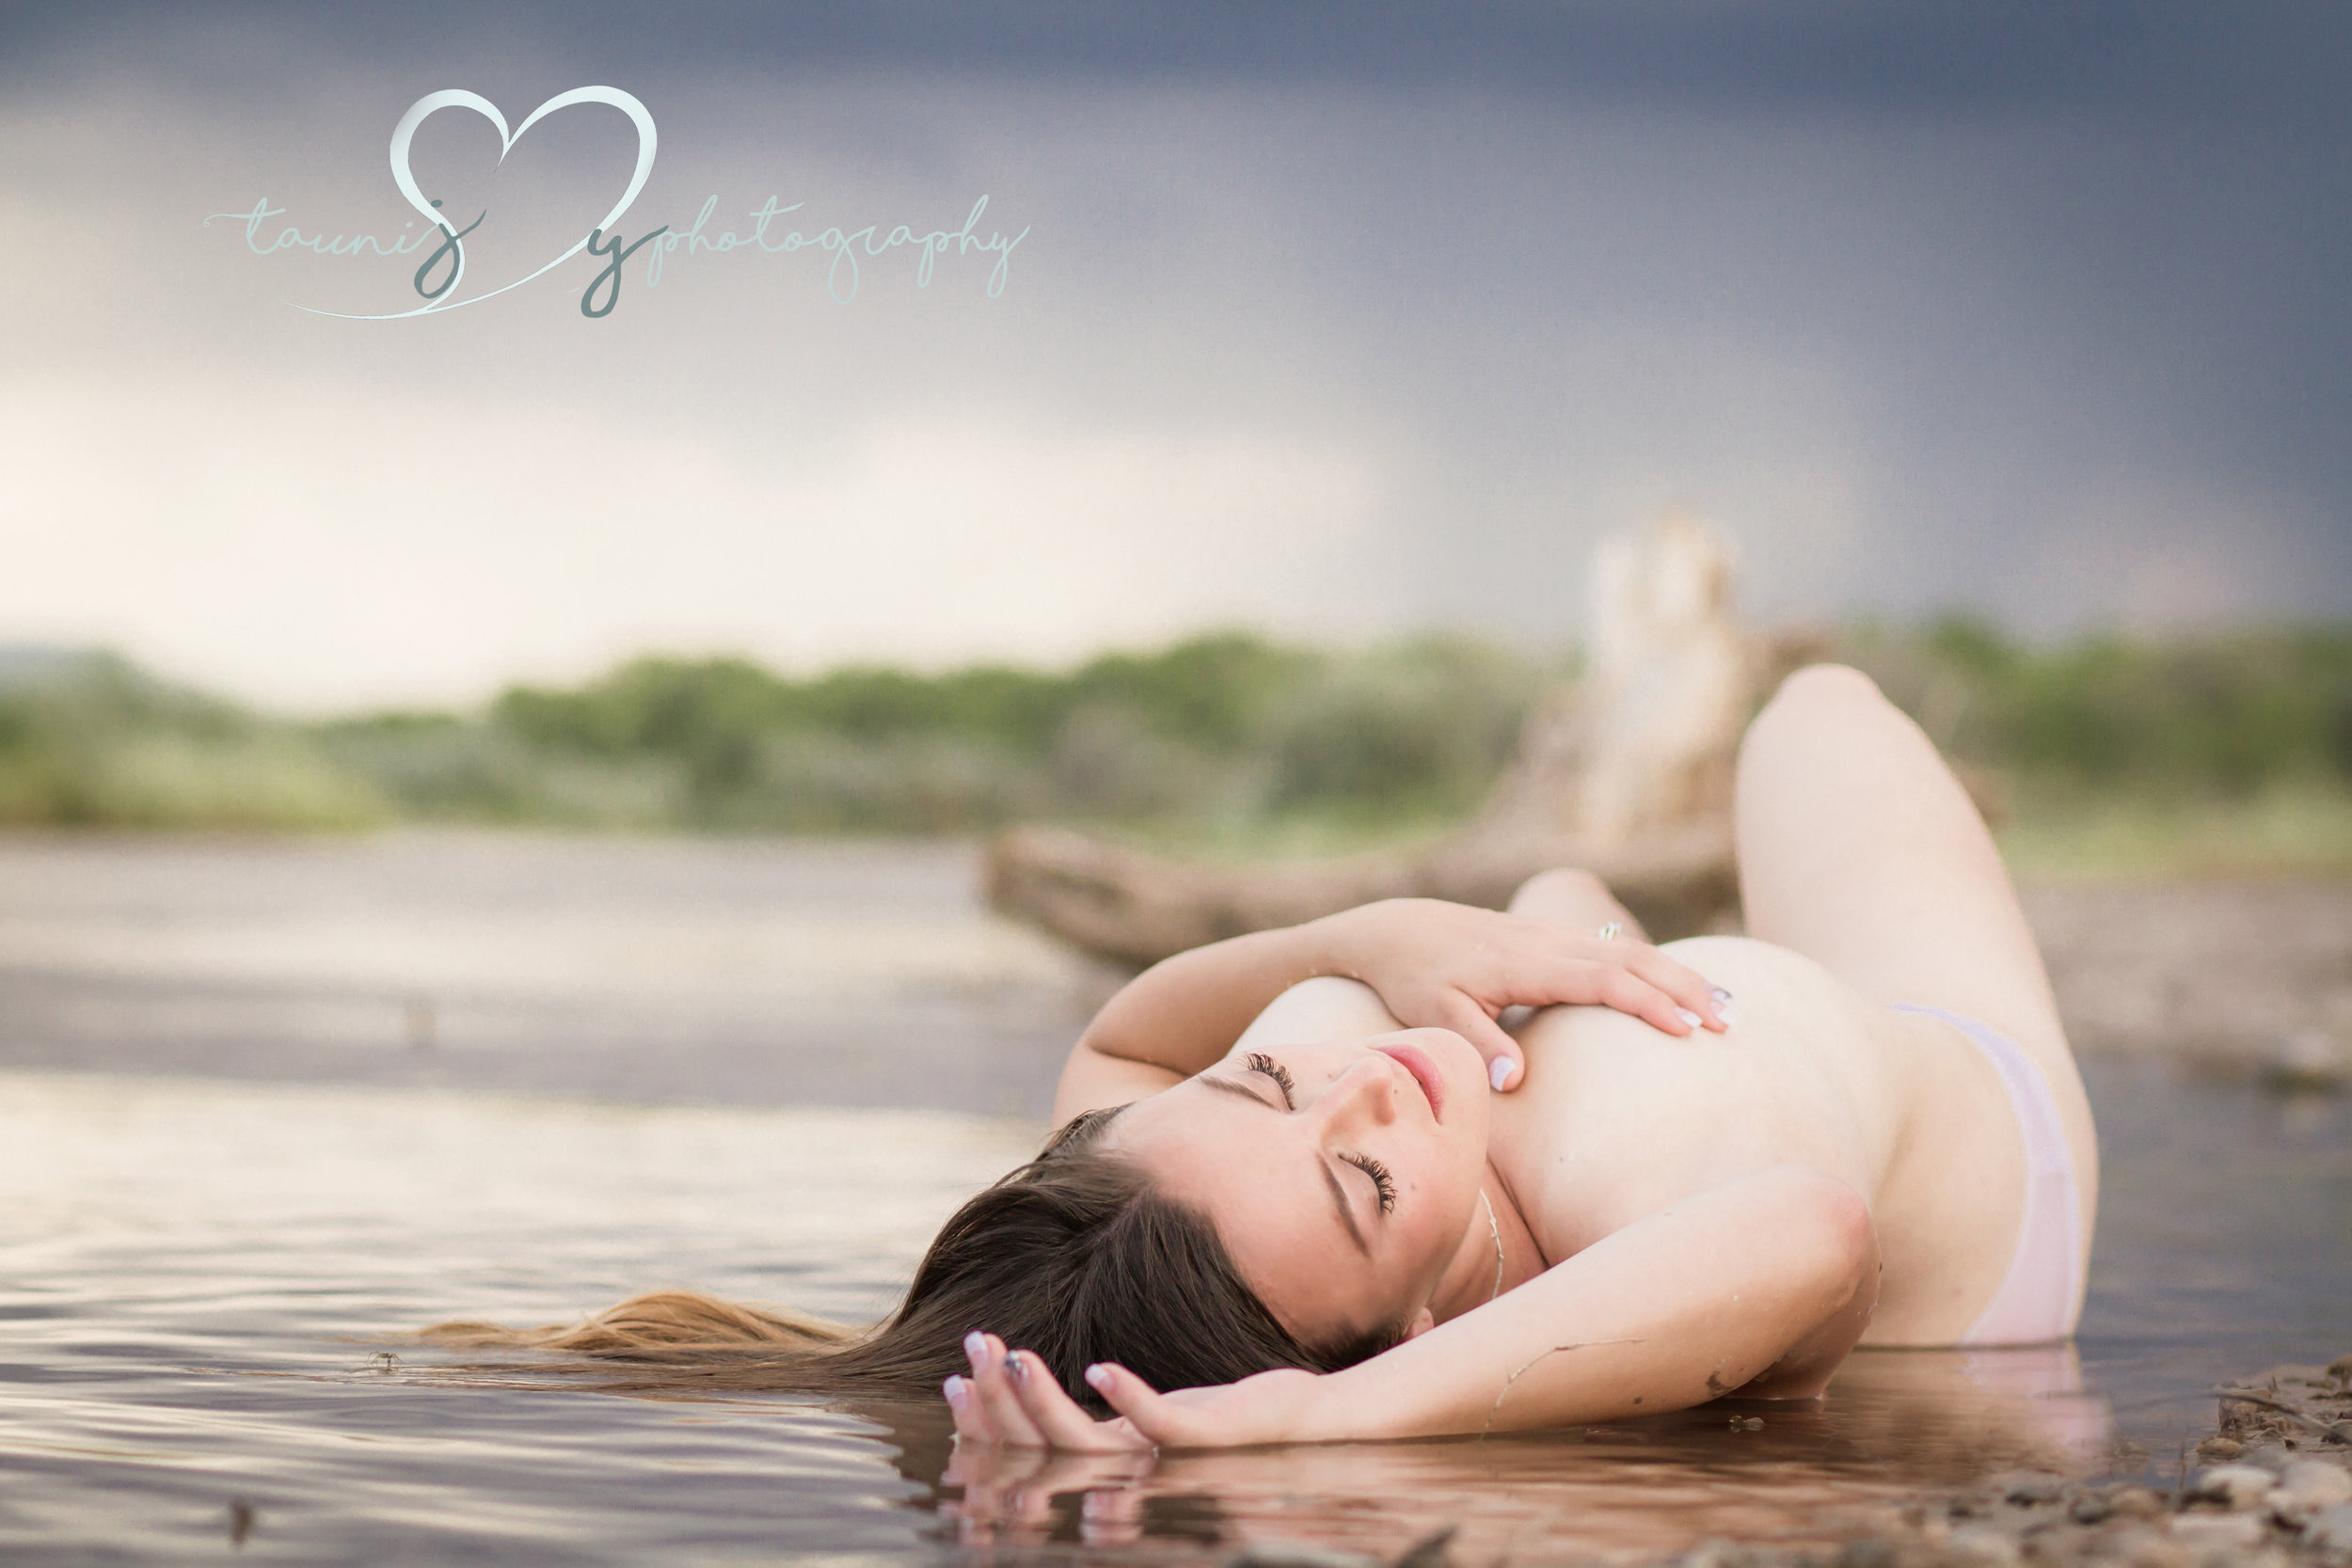 Texas outdoor boudoir photographer Tauni Joy Photography